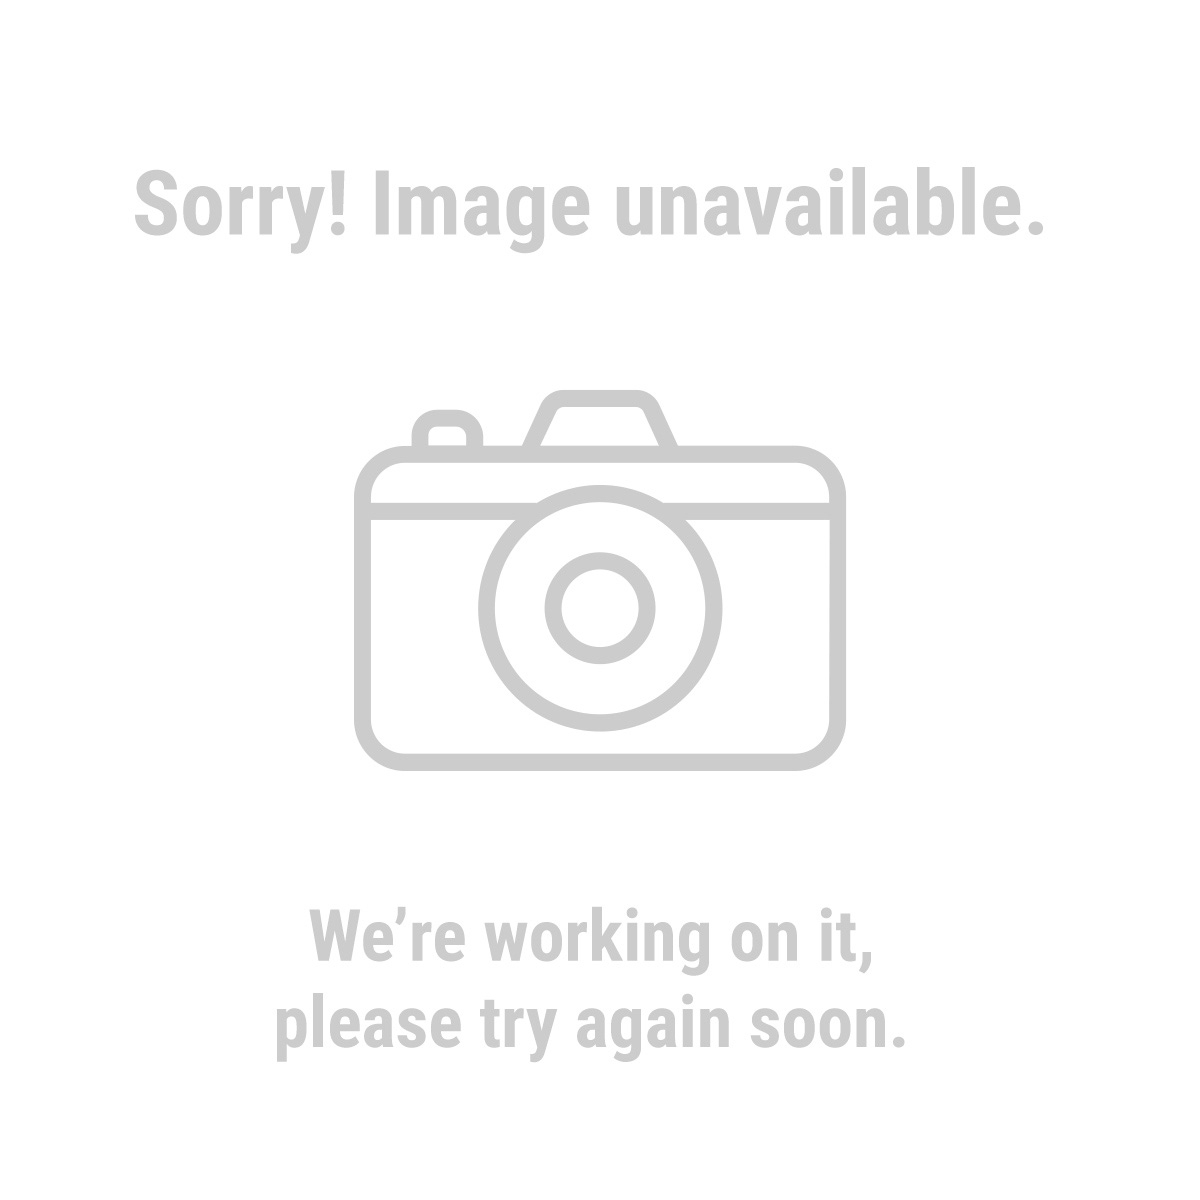 Pittsburgh® 67800 2-In-1 Magnetic Laser Level